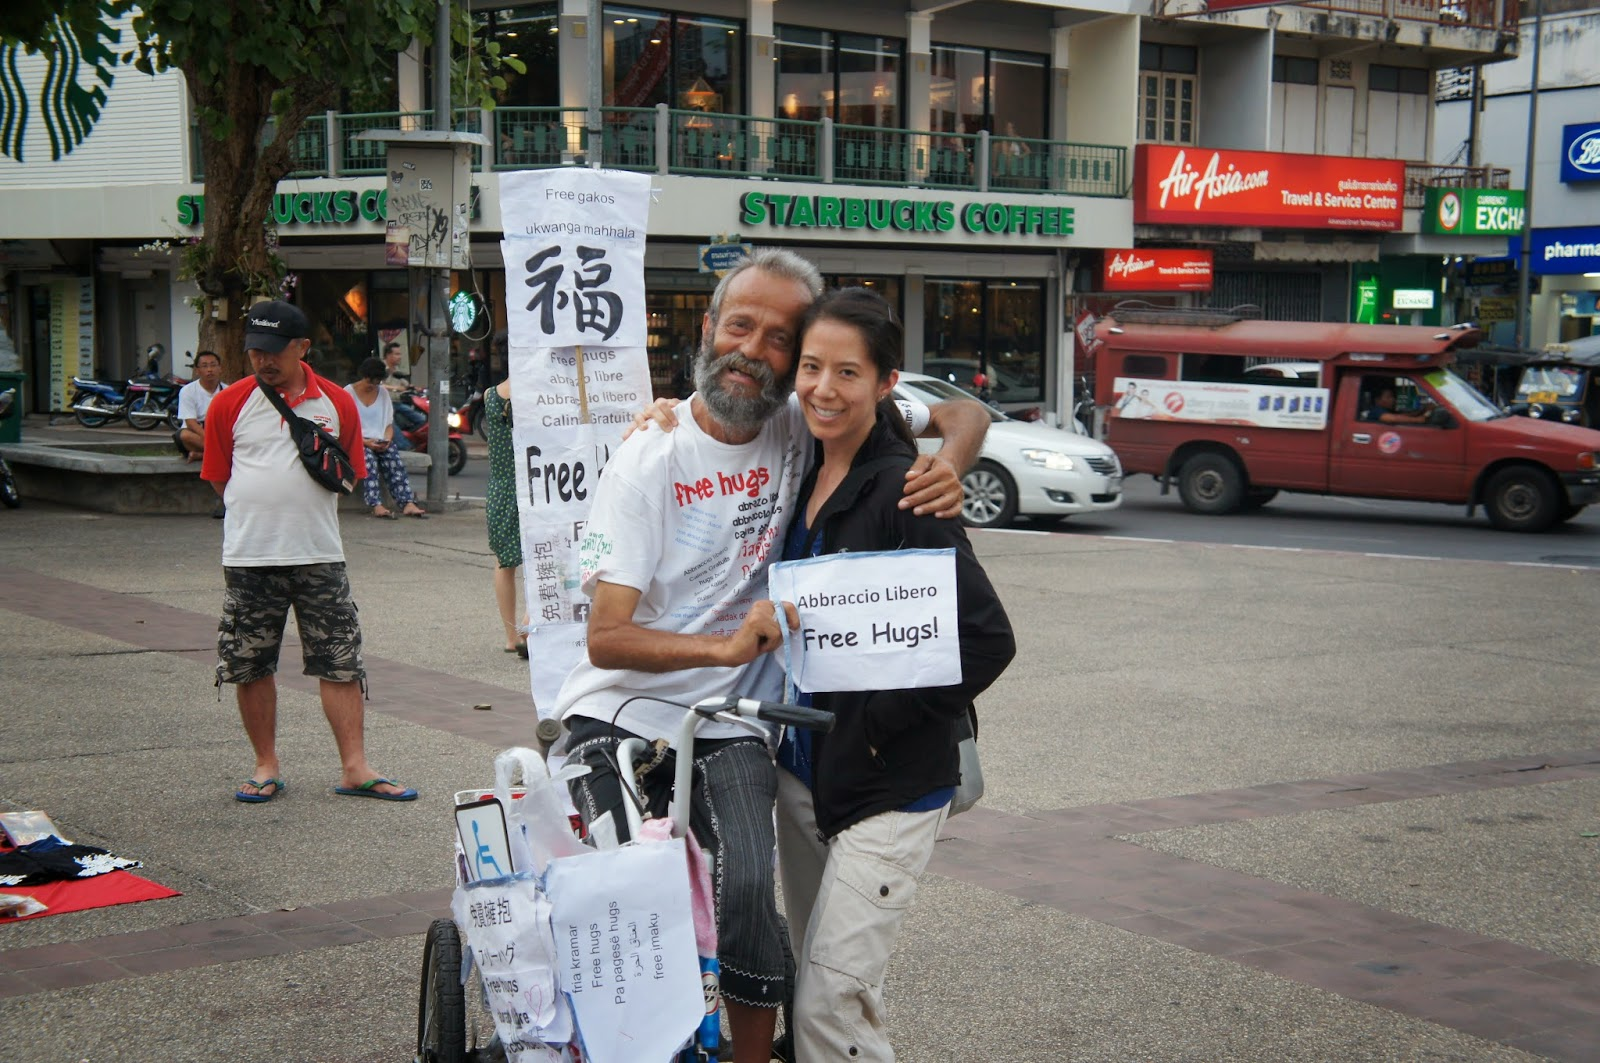 Chiang Mai - I saw a guy giving out free hugs so I had to get one. I love free hugs!